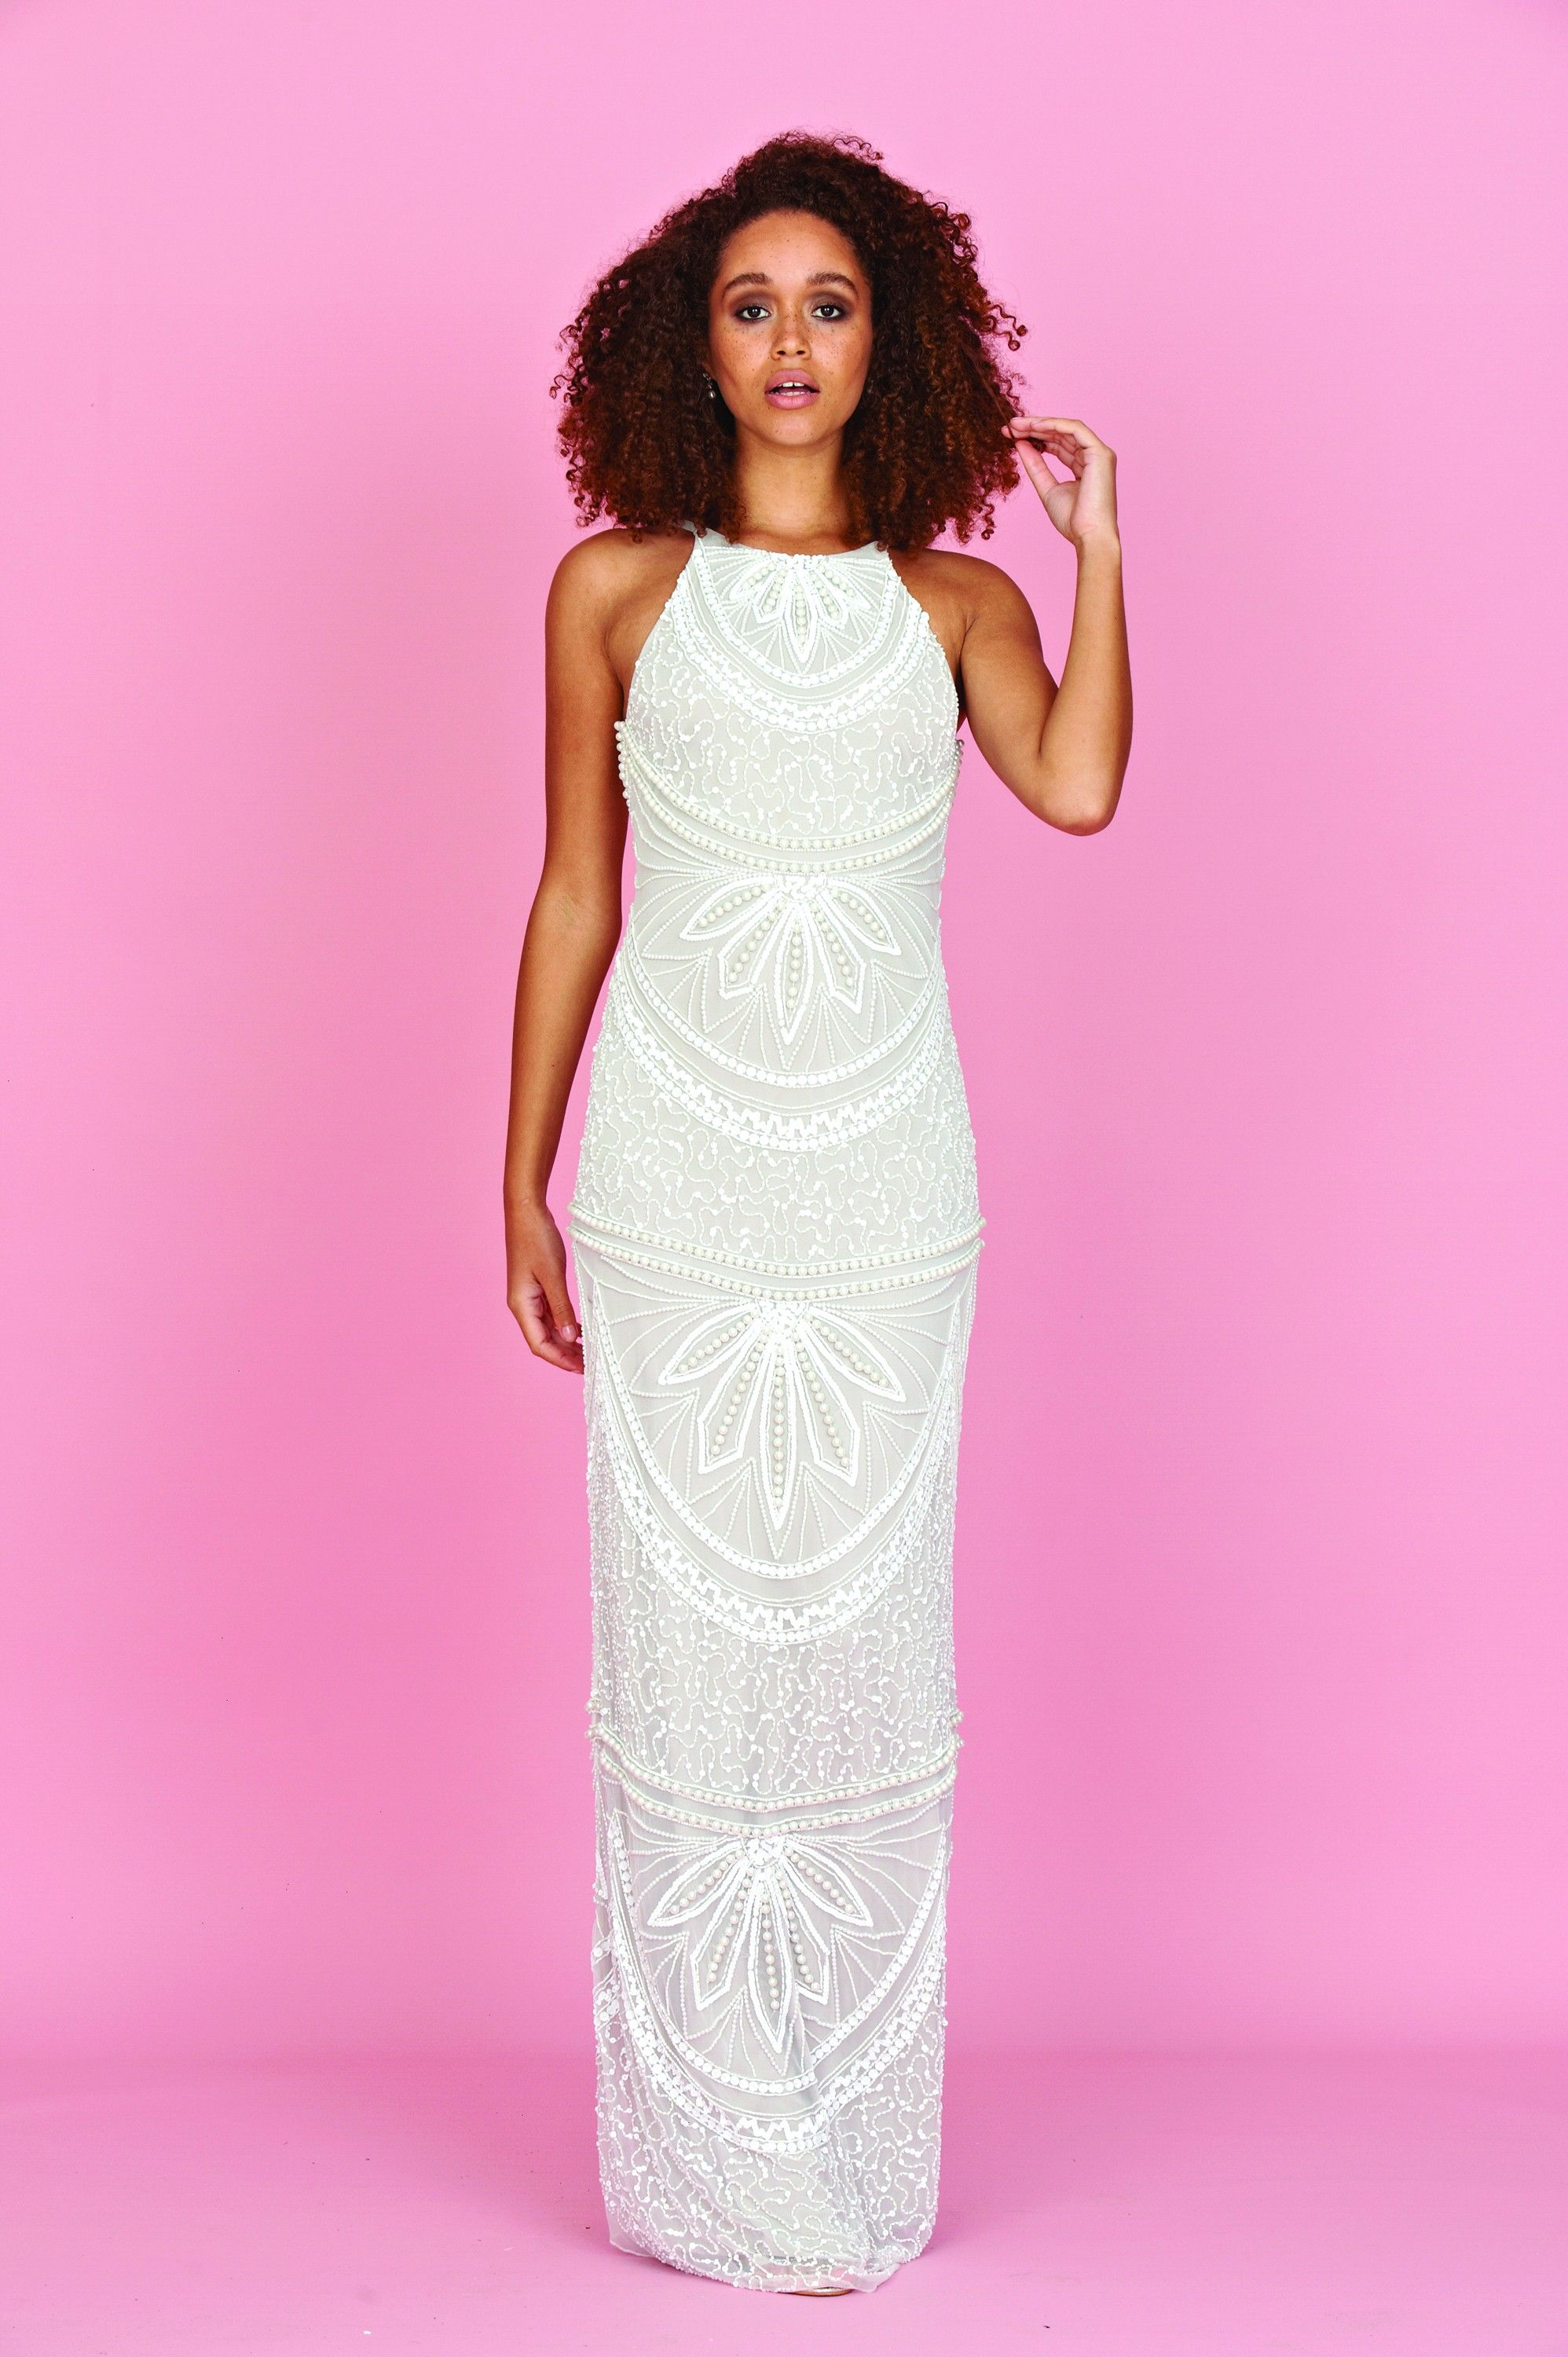 Pin By Frock And Frill On Lel S Gettin Hitched High Street Wedding Dresses Embellished Maxi Dress Stunning Wedding Dresses,Long Indian Dresses For Weddings